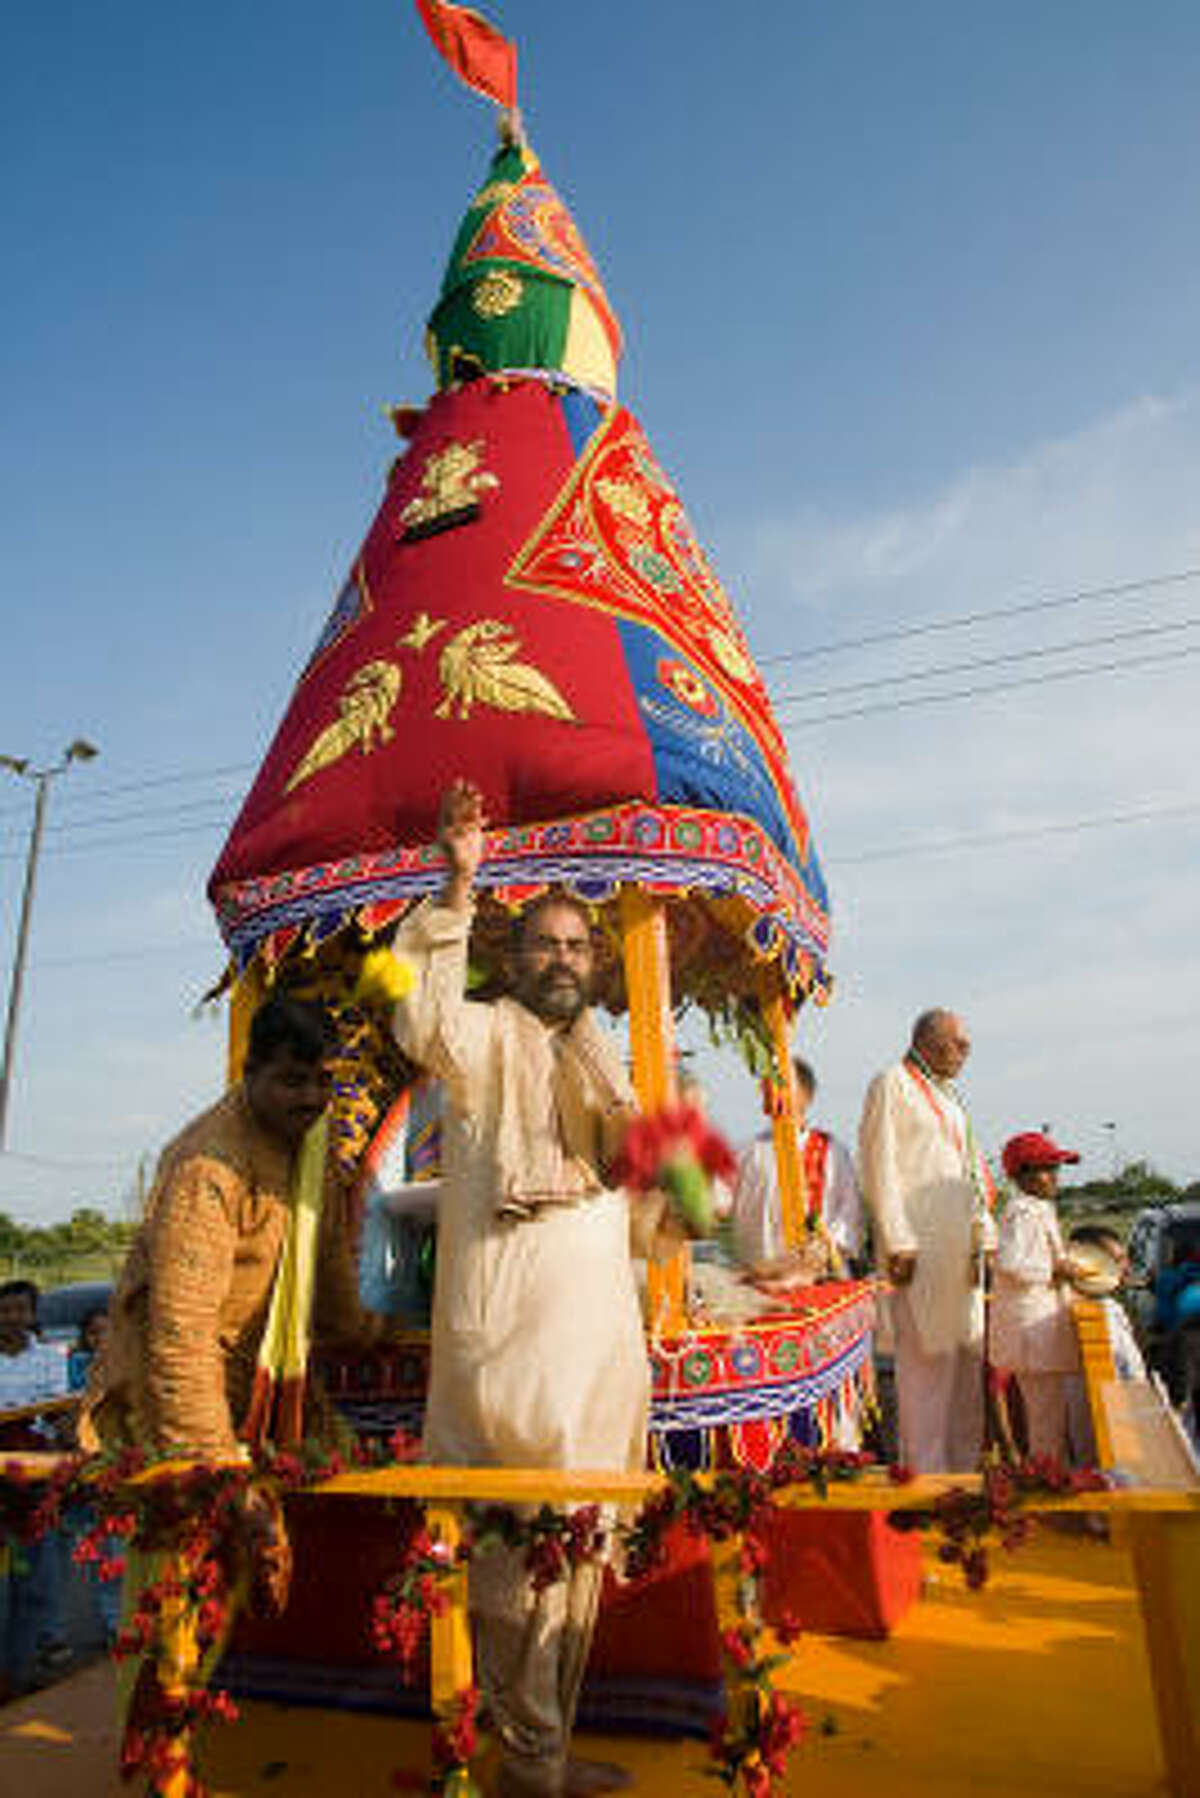 RATH YATRA: Priest Debanand Pati tosses flowers from the chariot at the Houston Rath Yatra festival (the Festival of Chariots) at the Shri Radha Krishna Temple on Beechnut.